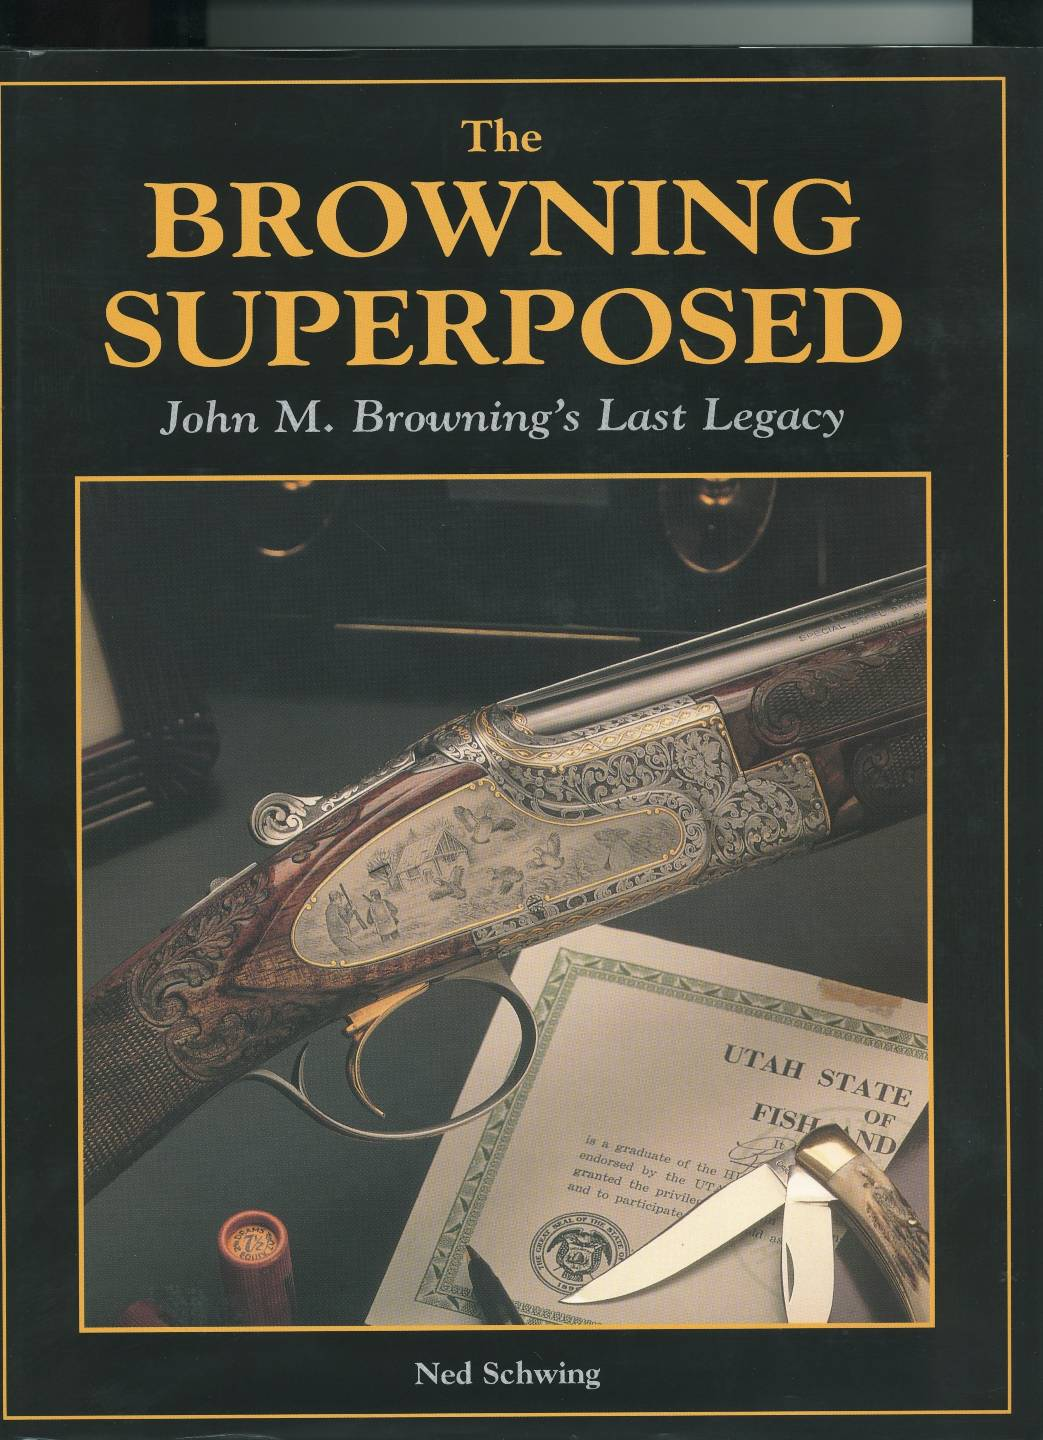 FN Browning Superposed